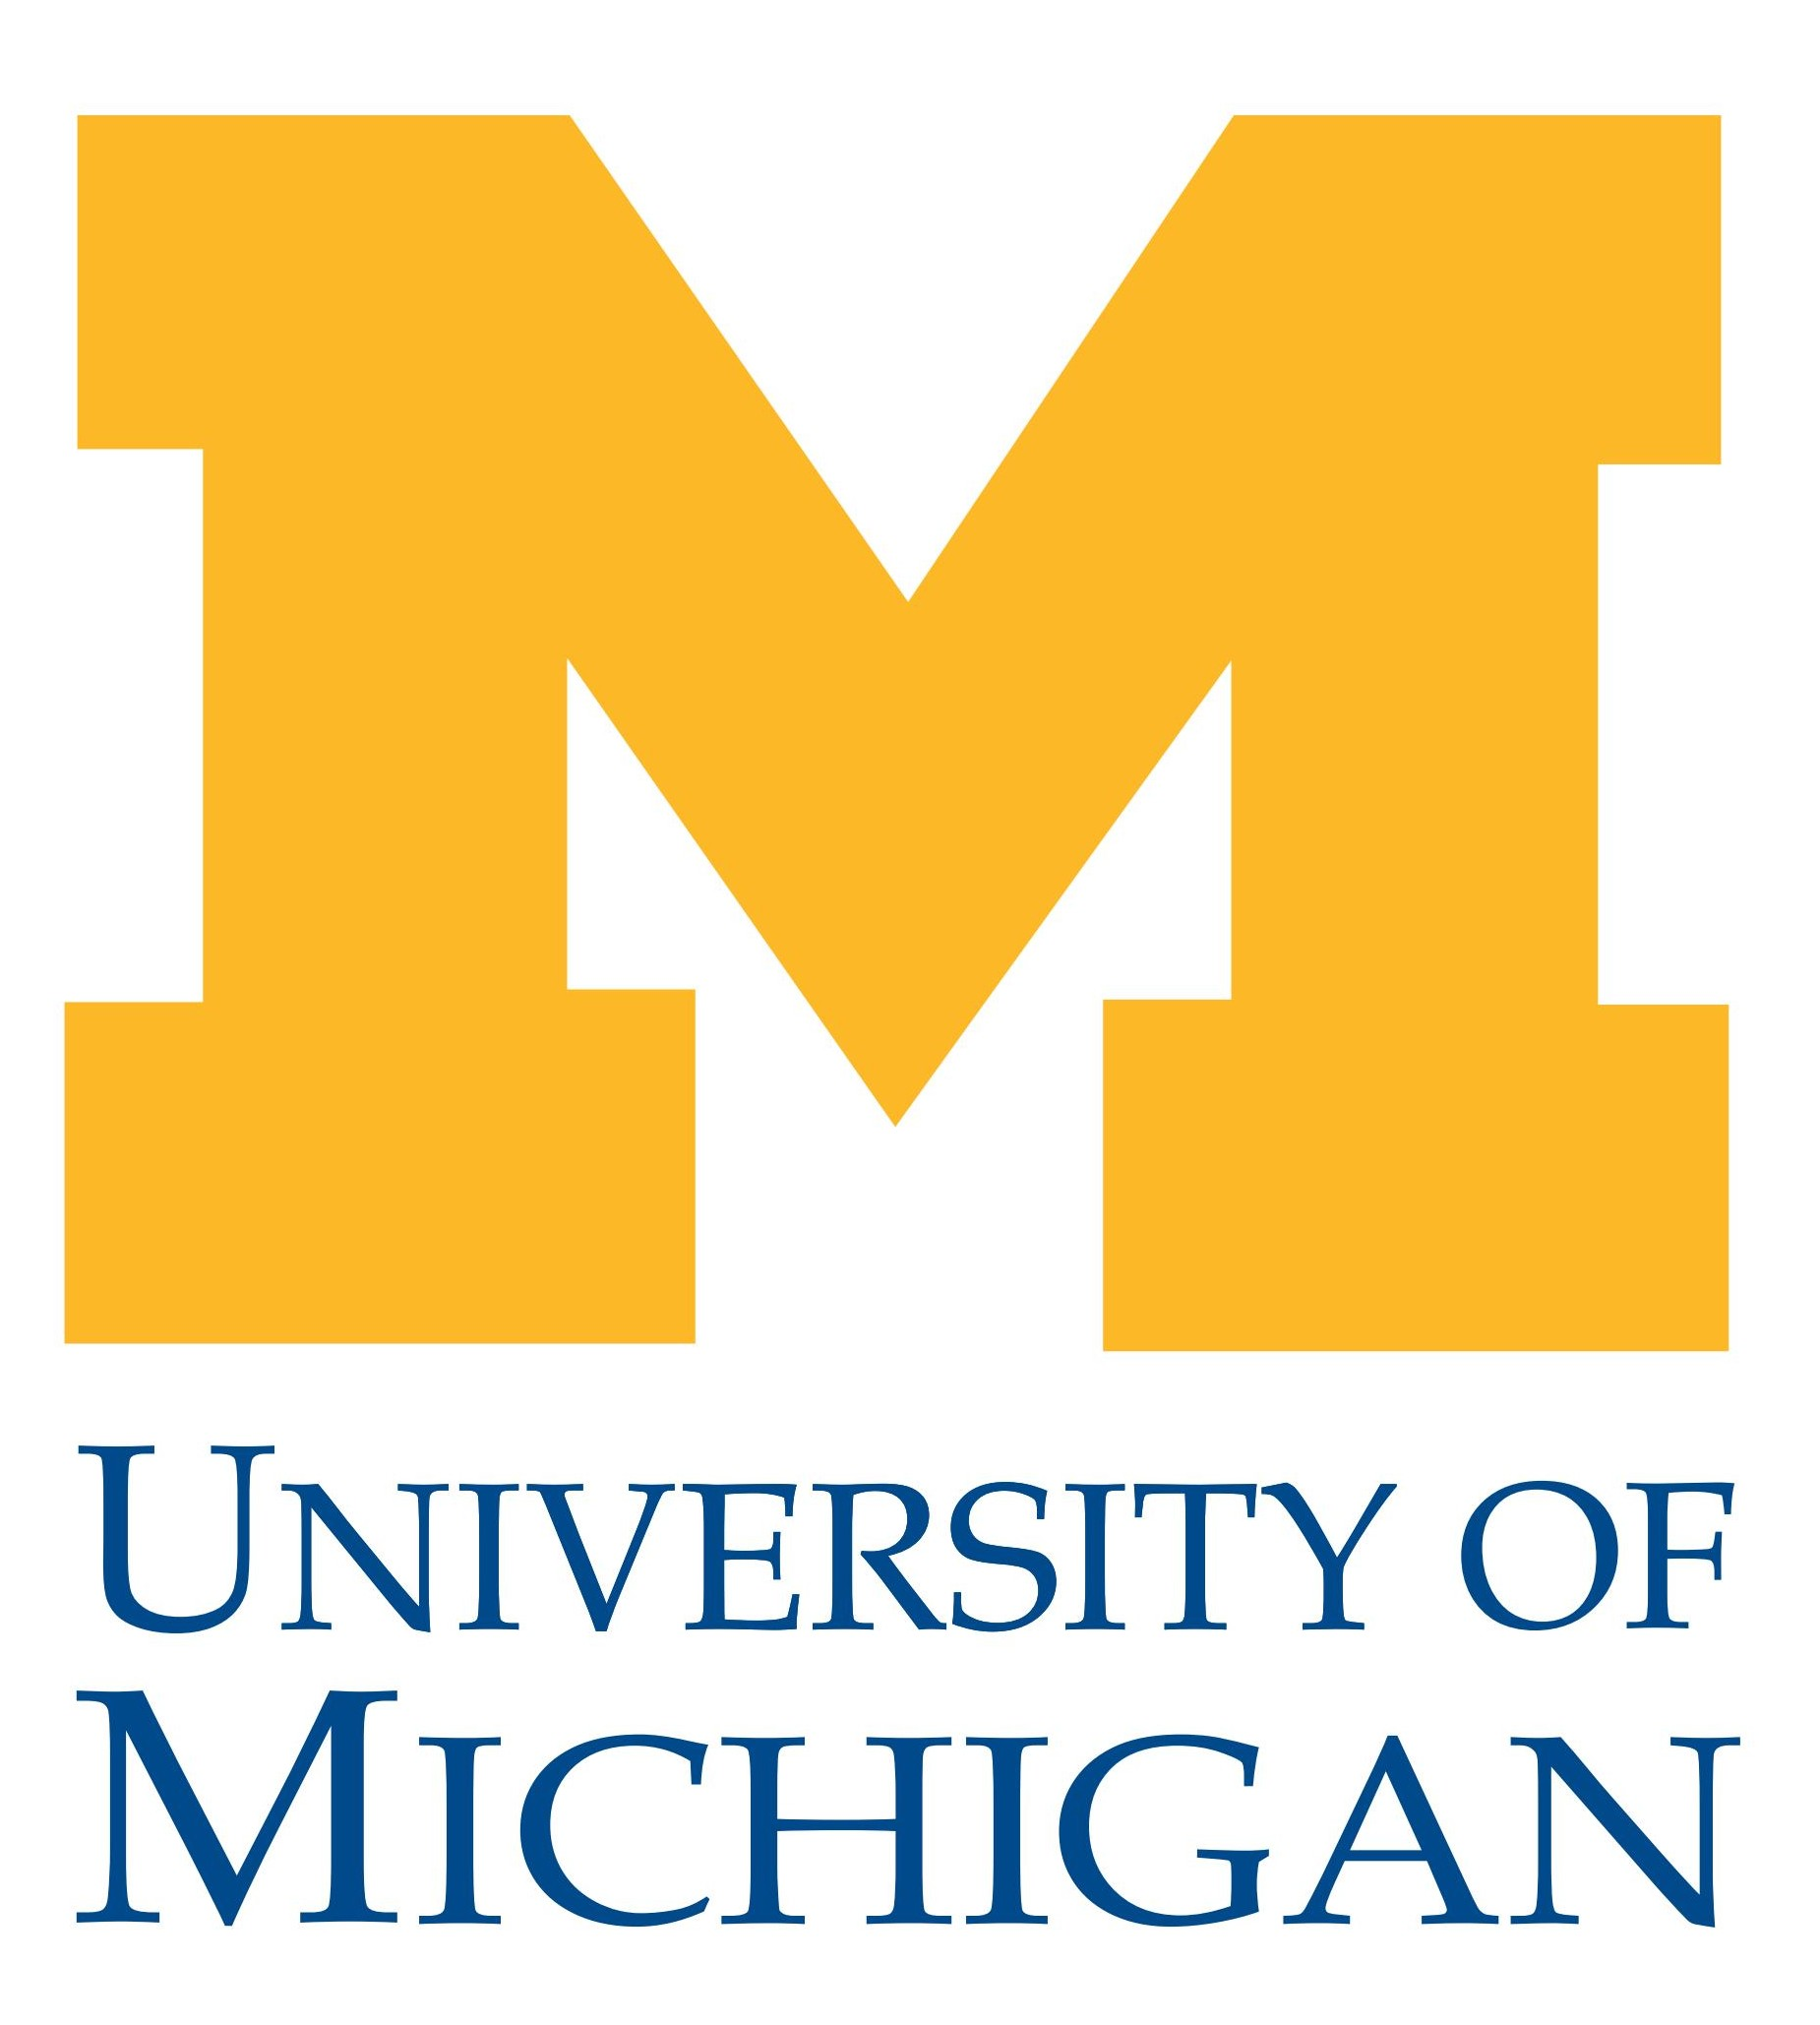 State of michigan logo clip art image library download Books Not Bombs - University of Michigan image library download